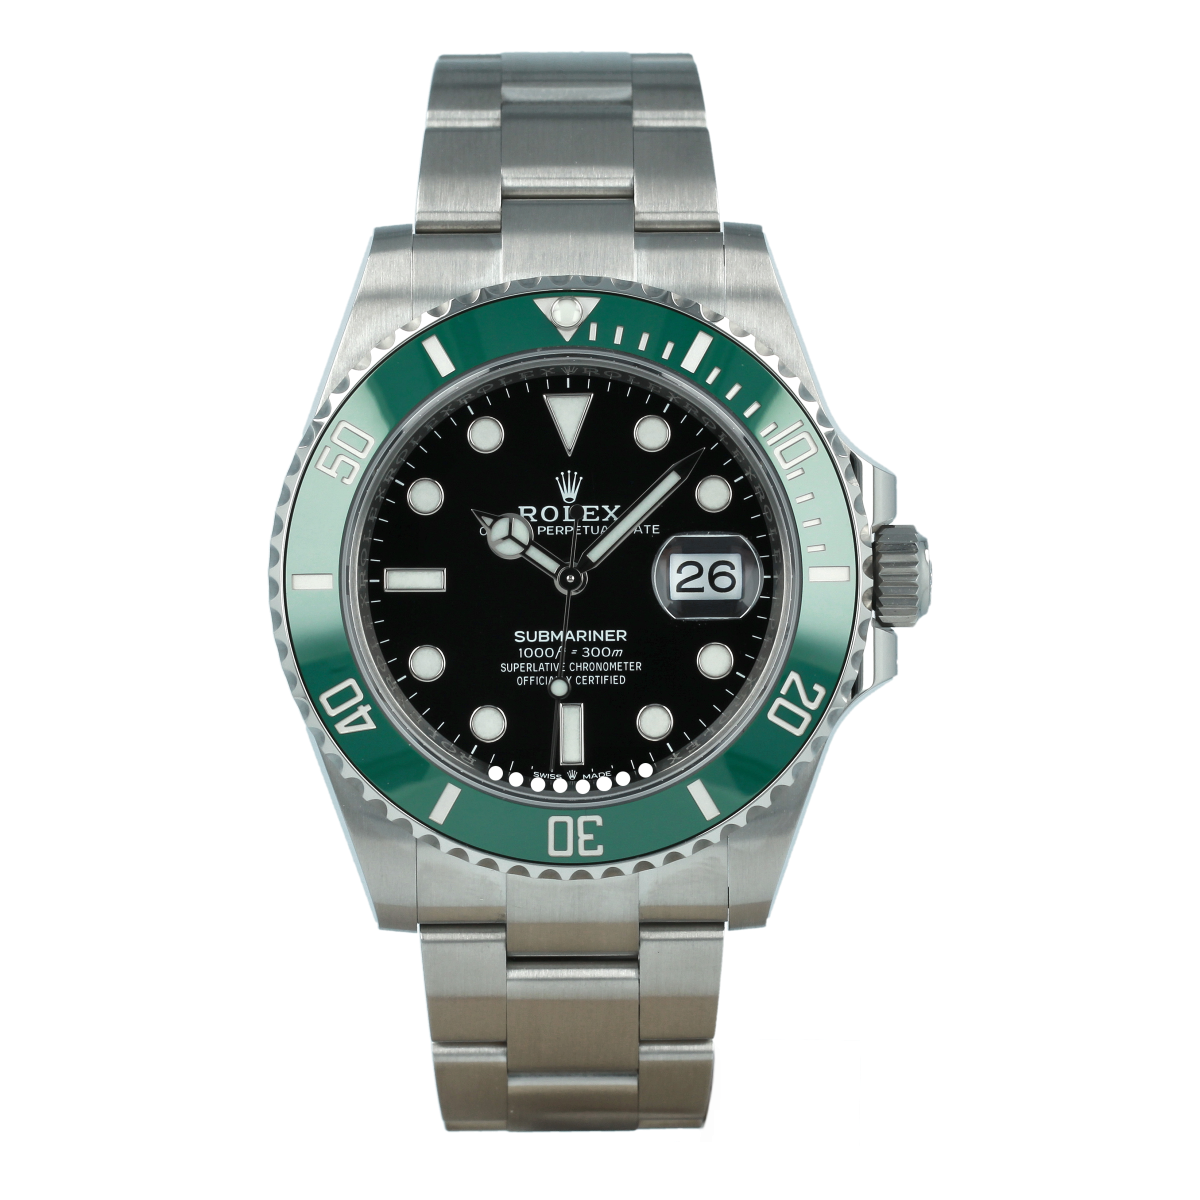 Rolex Submariner Date 126610LV